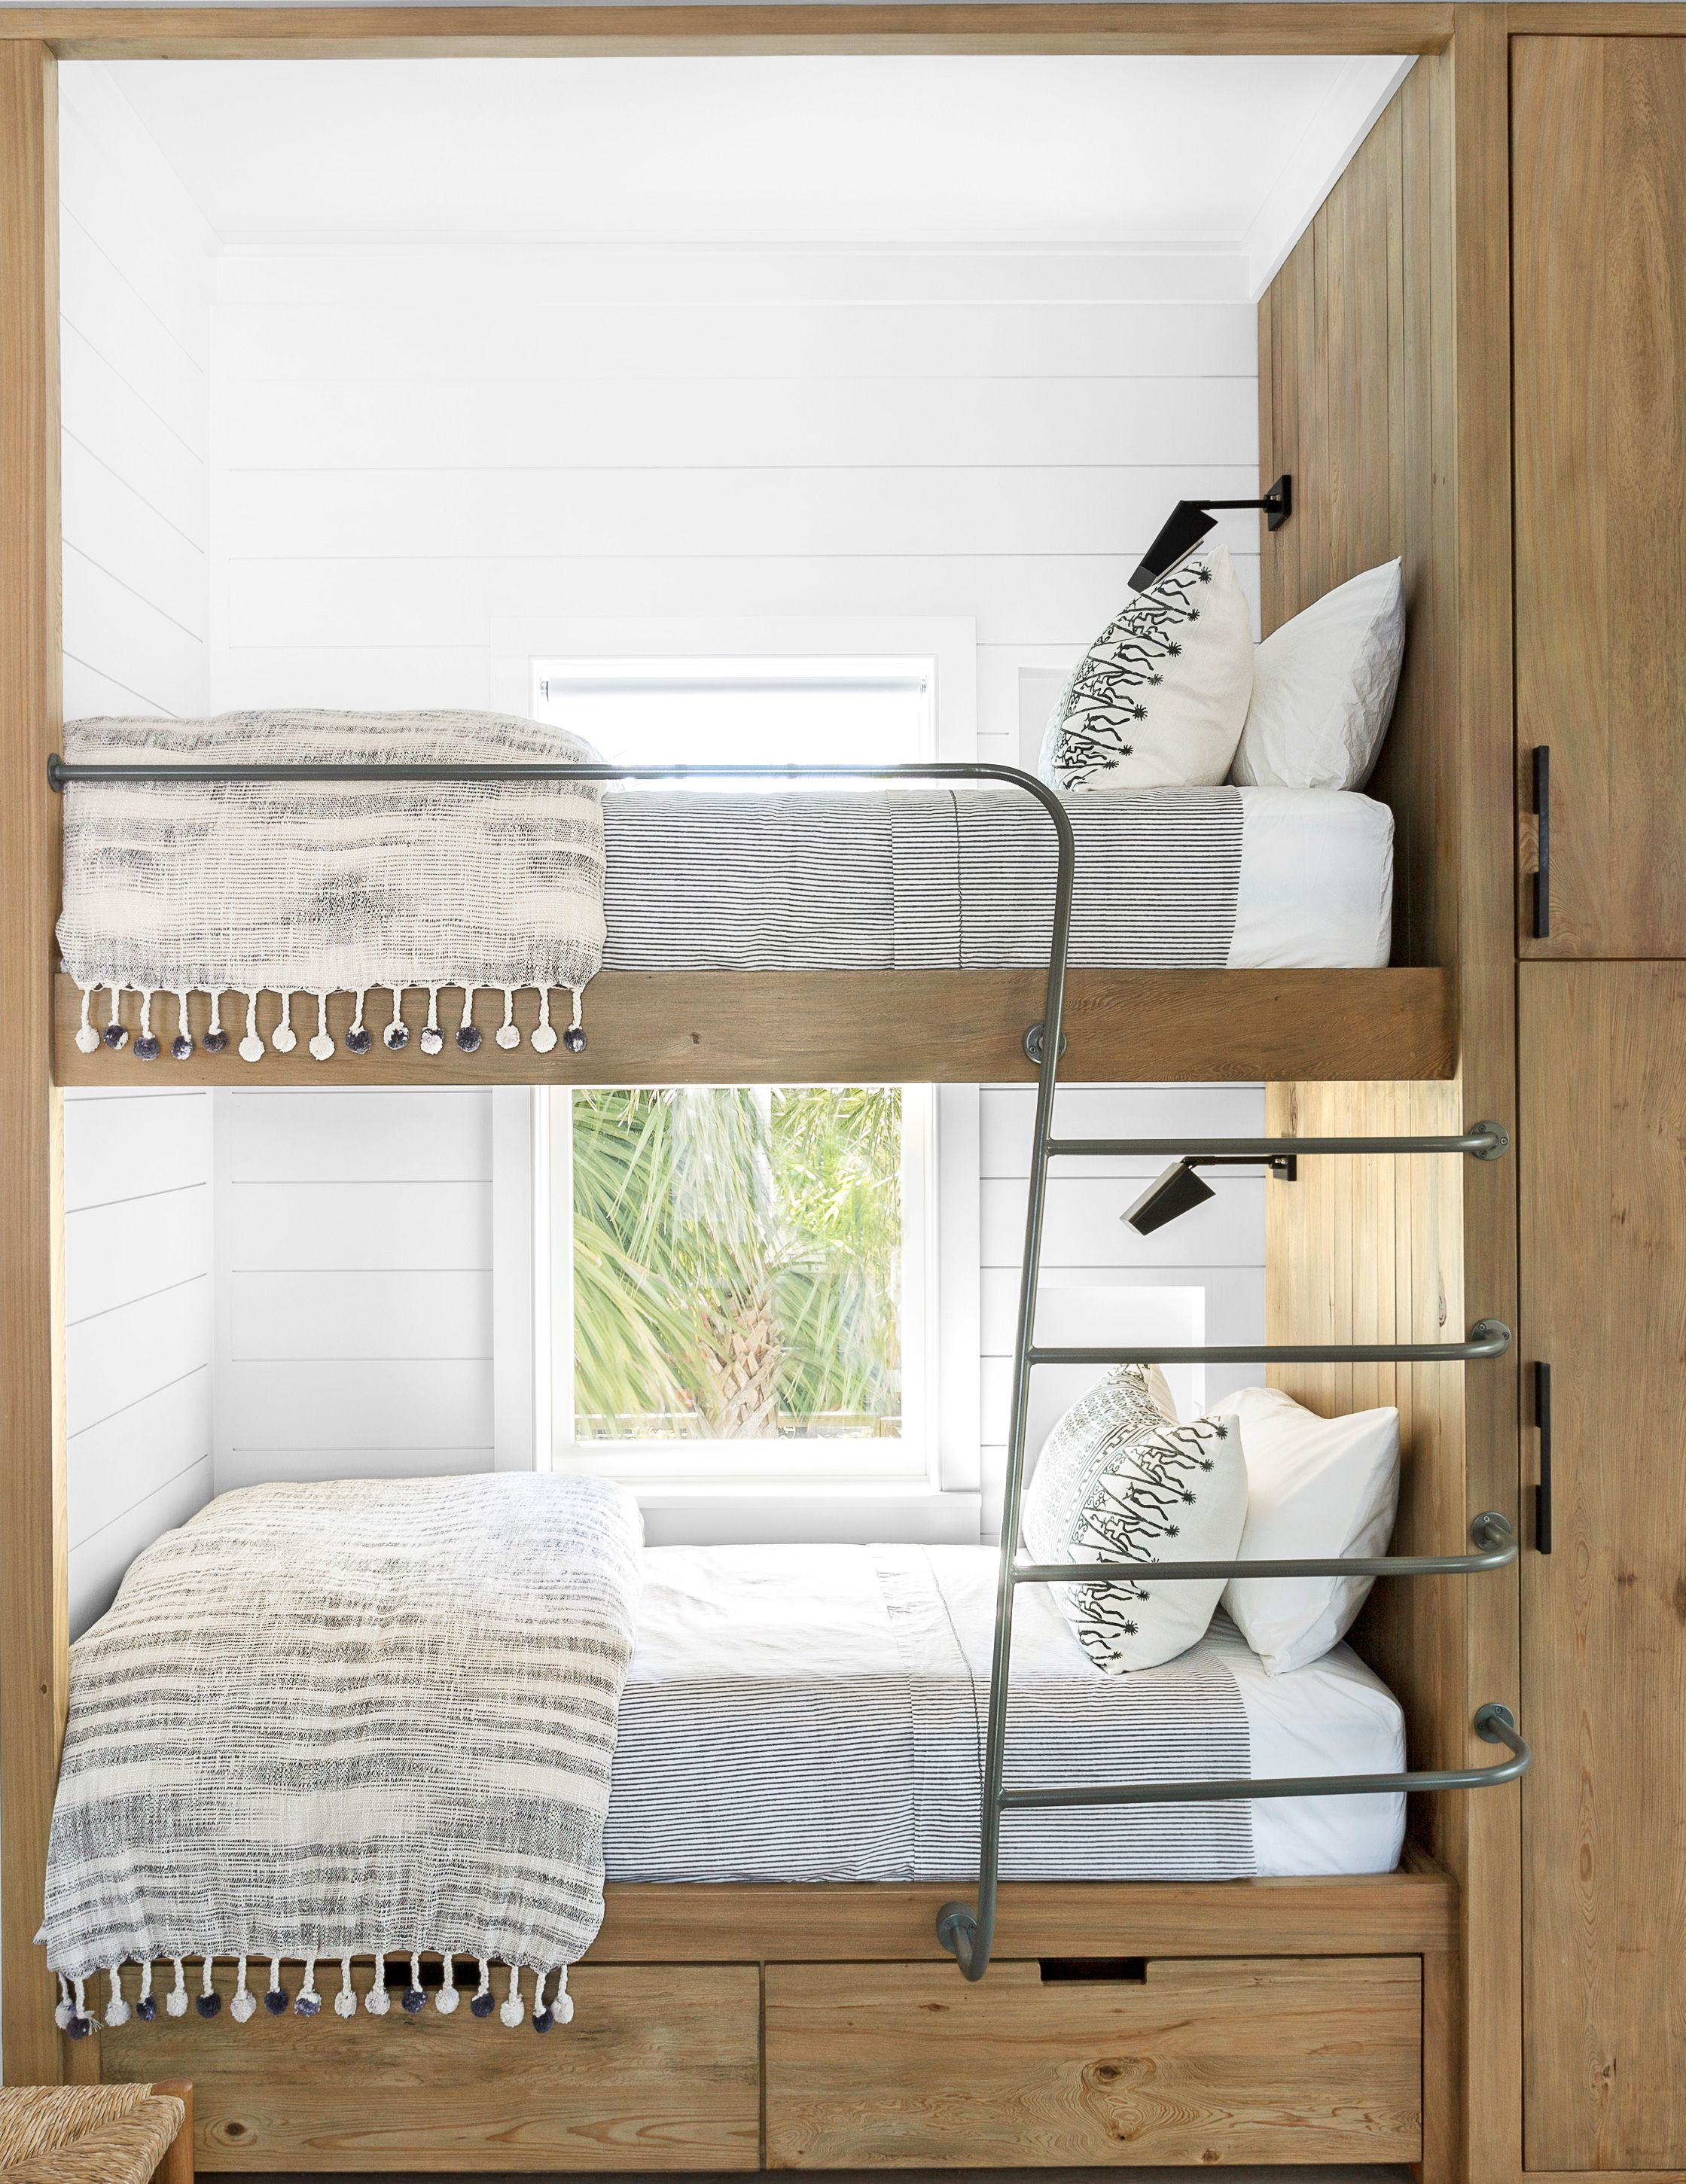 55 Kids' Room Design Ideas - Cool Kids' Bedroom Decor and Style on ice house cabinets, ice house home, ice house table, ice house furniture, ice house accessories,